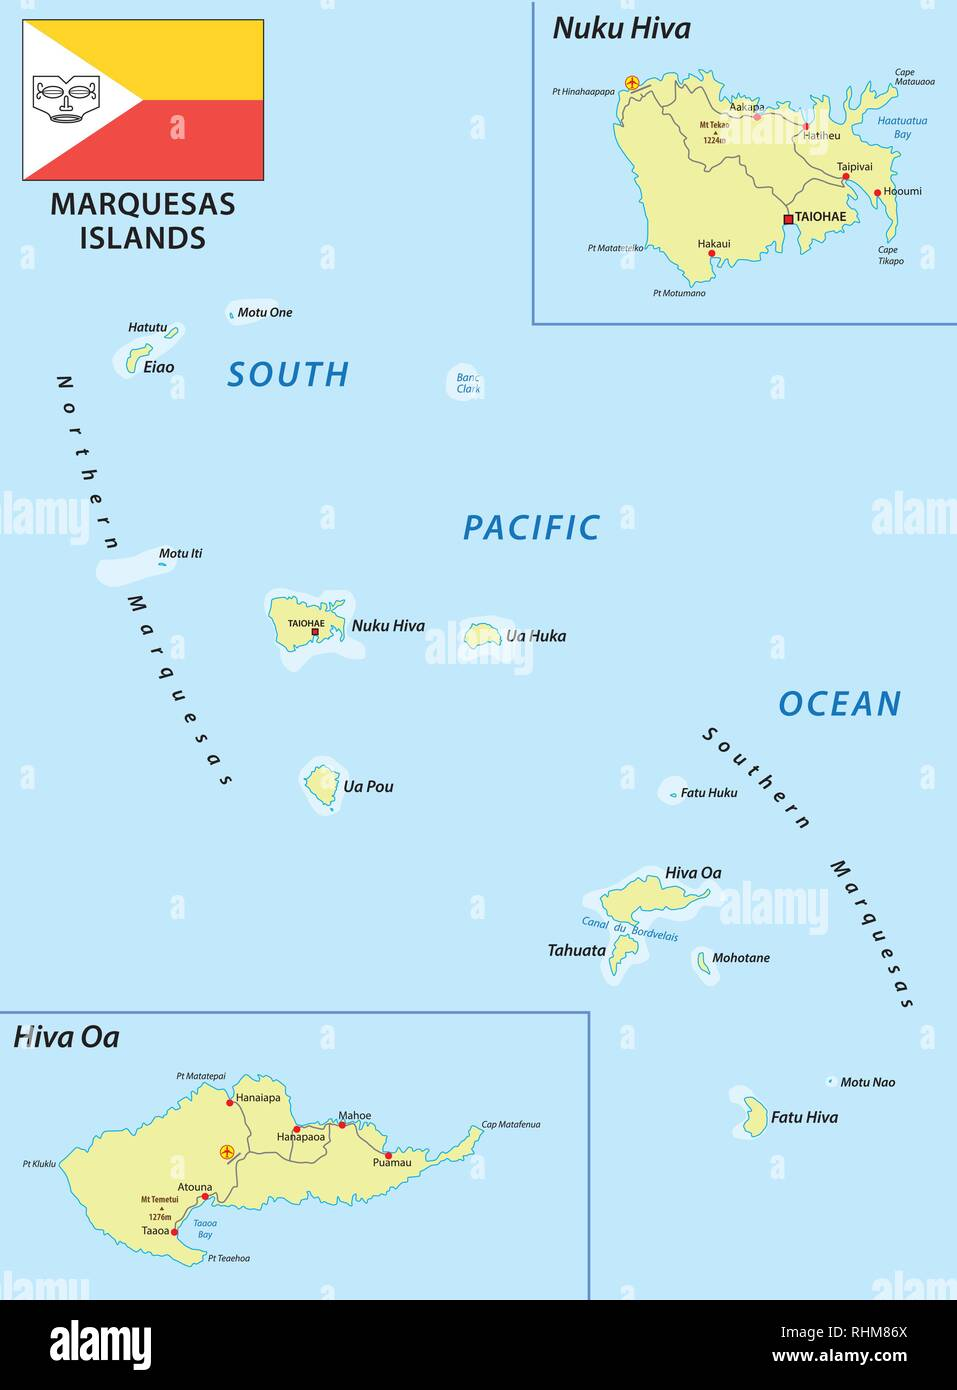 marquesas islands vector map with flag - Stock Image